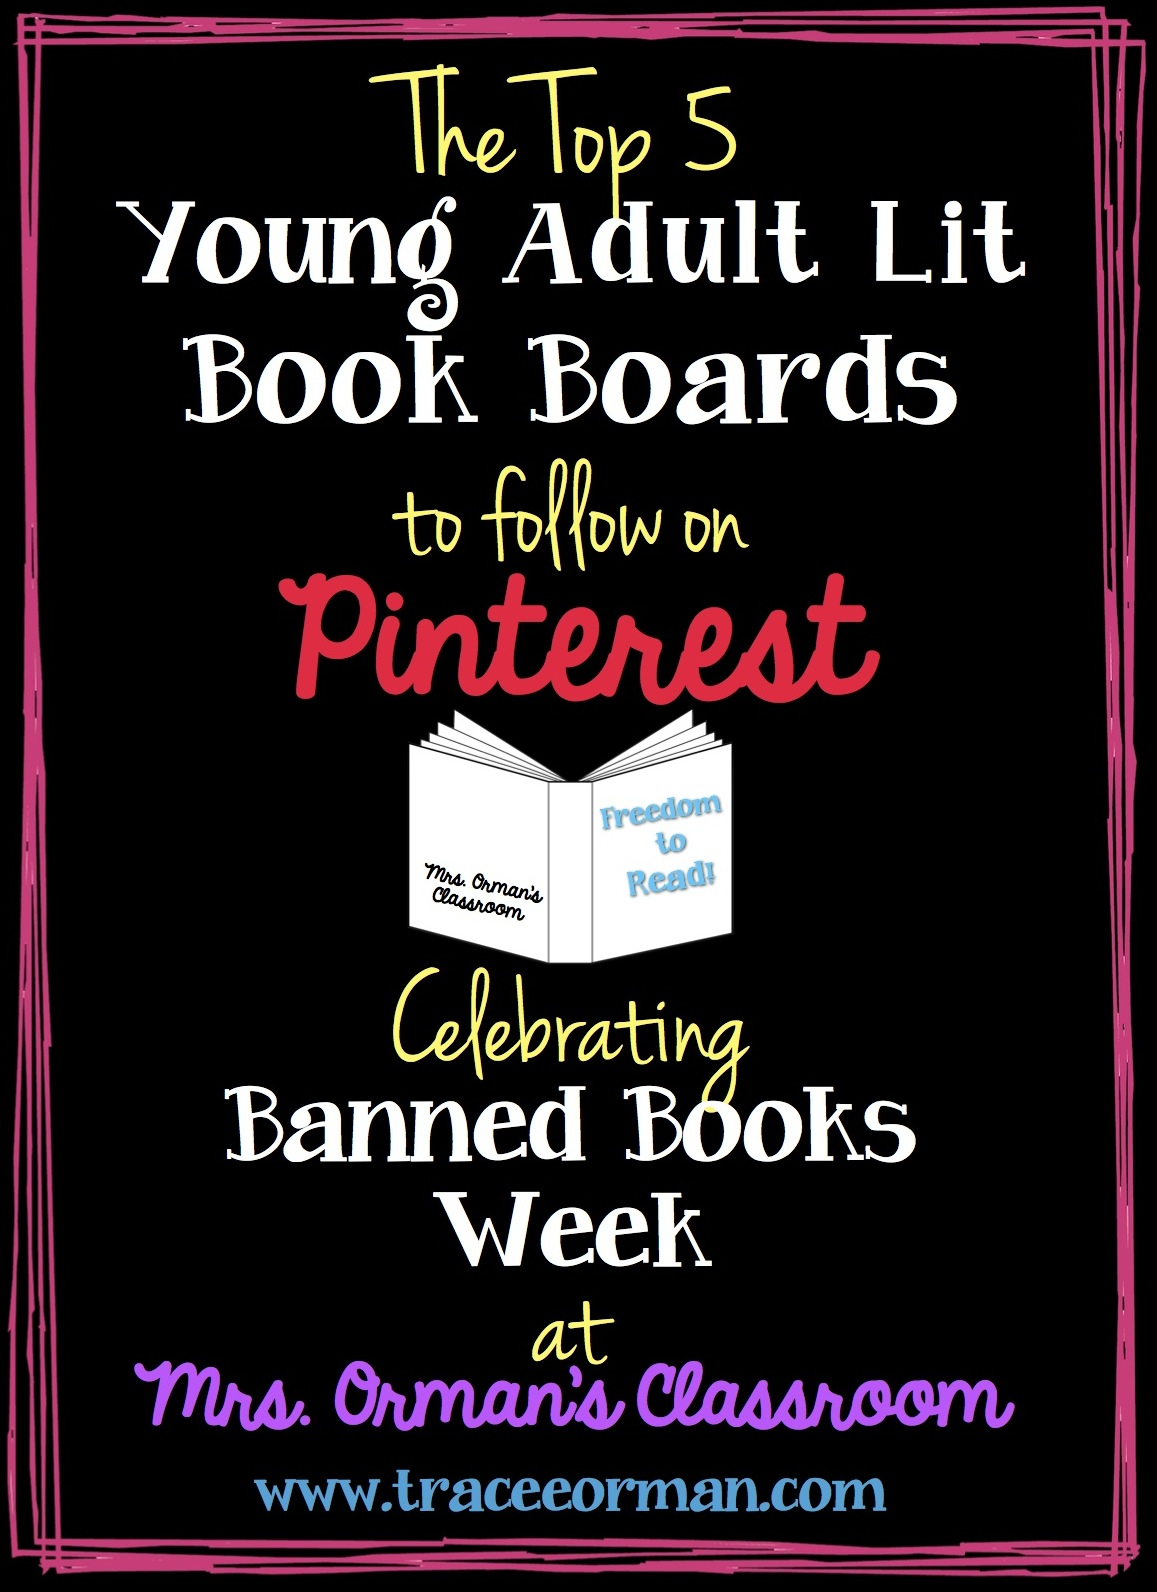 The Best Pin Boards on Pinterest for Young Adult Books